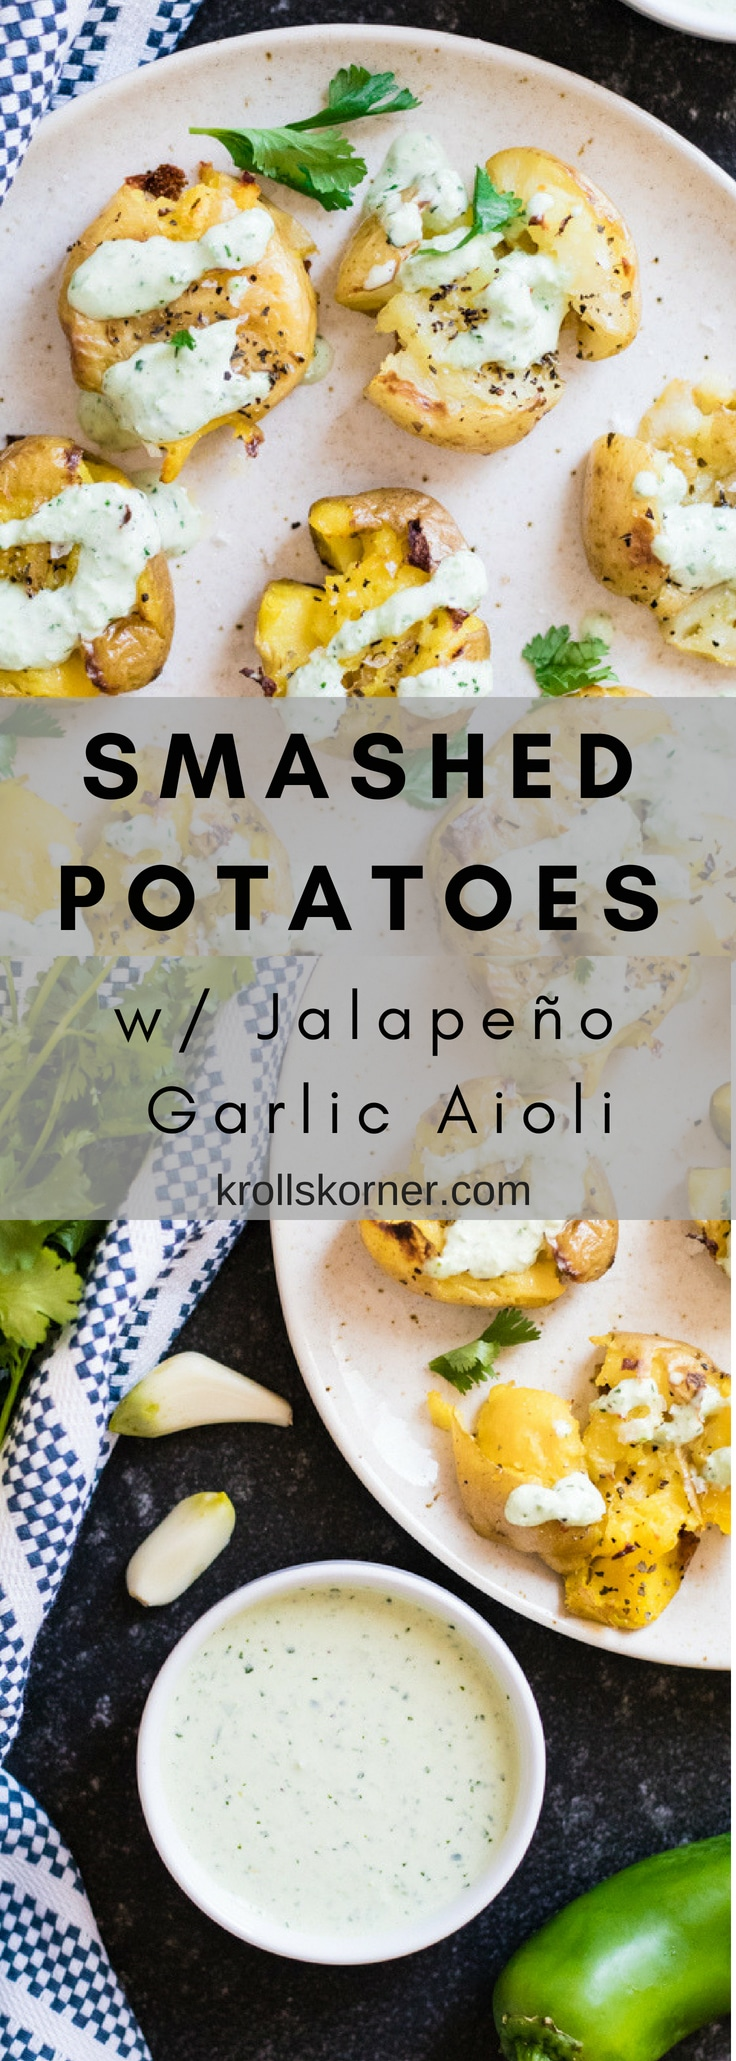 These smashed potatoes are easy, delicious and only take 35 minutes to make! #Krollskorner #potatoes #sidedish #easy #healthy